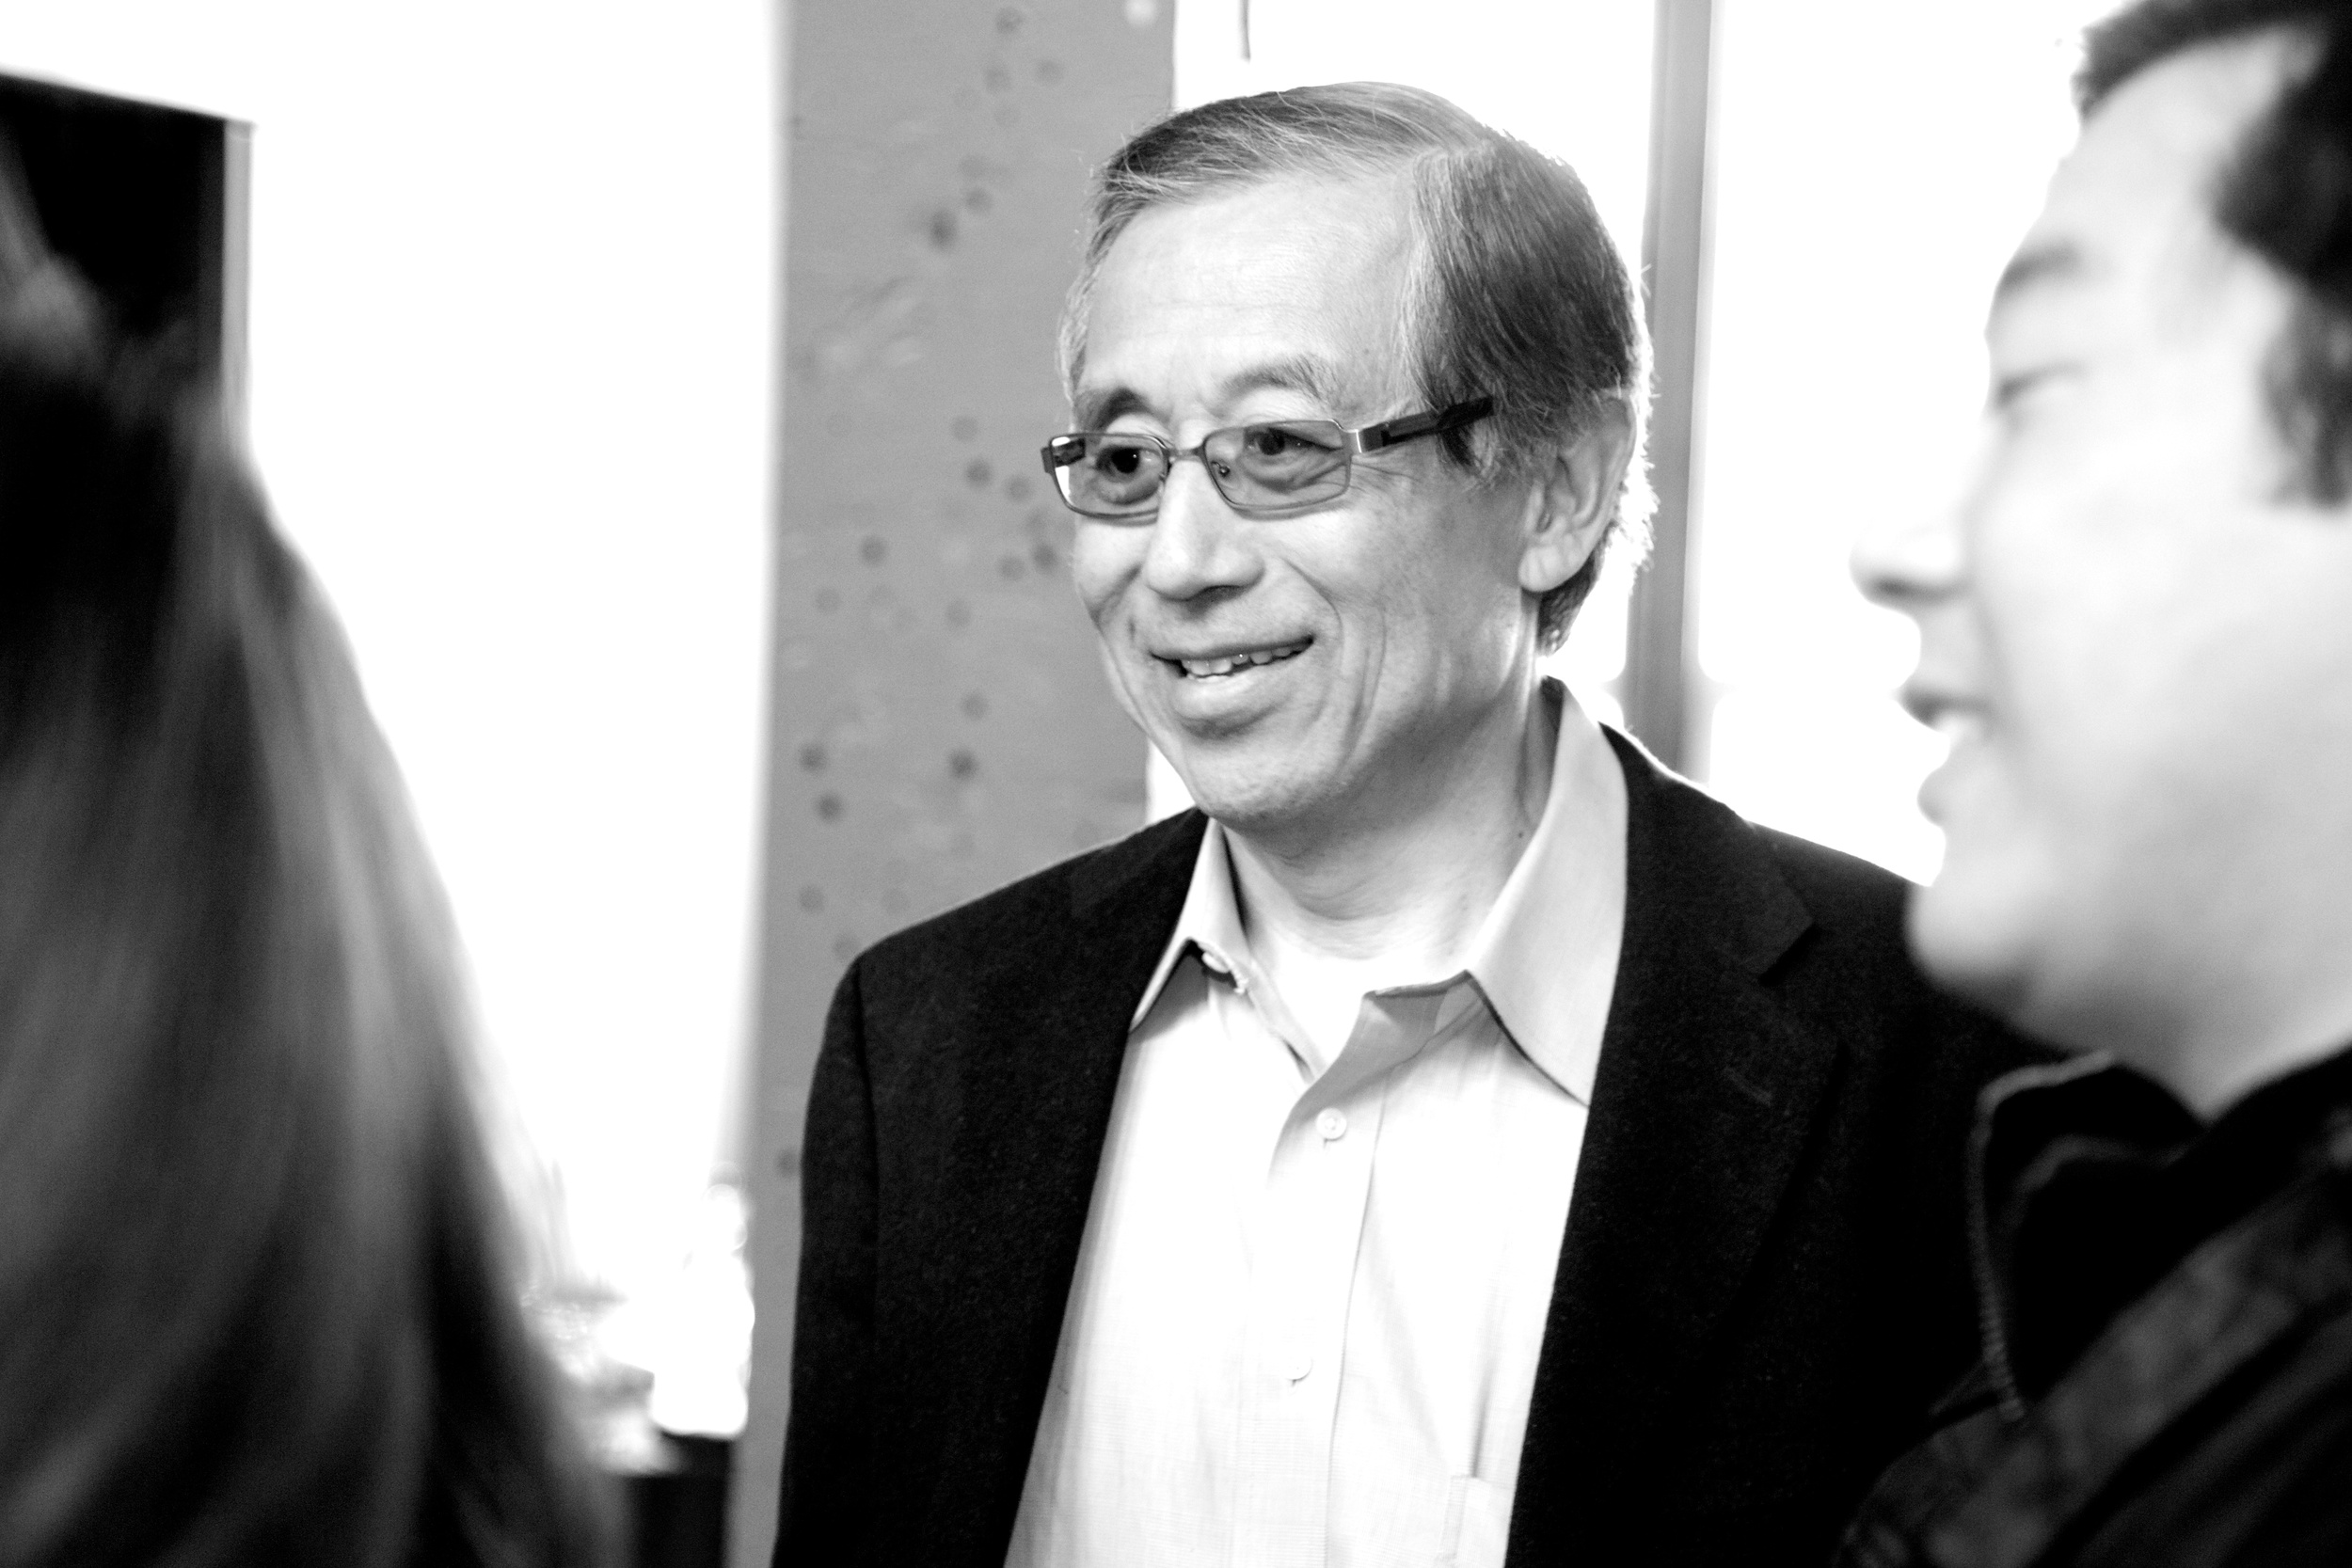 In memory of Ted (1949-2013), who left a legacy behind with EDI.